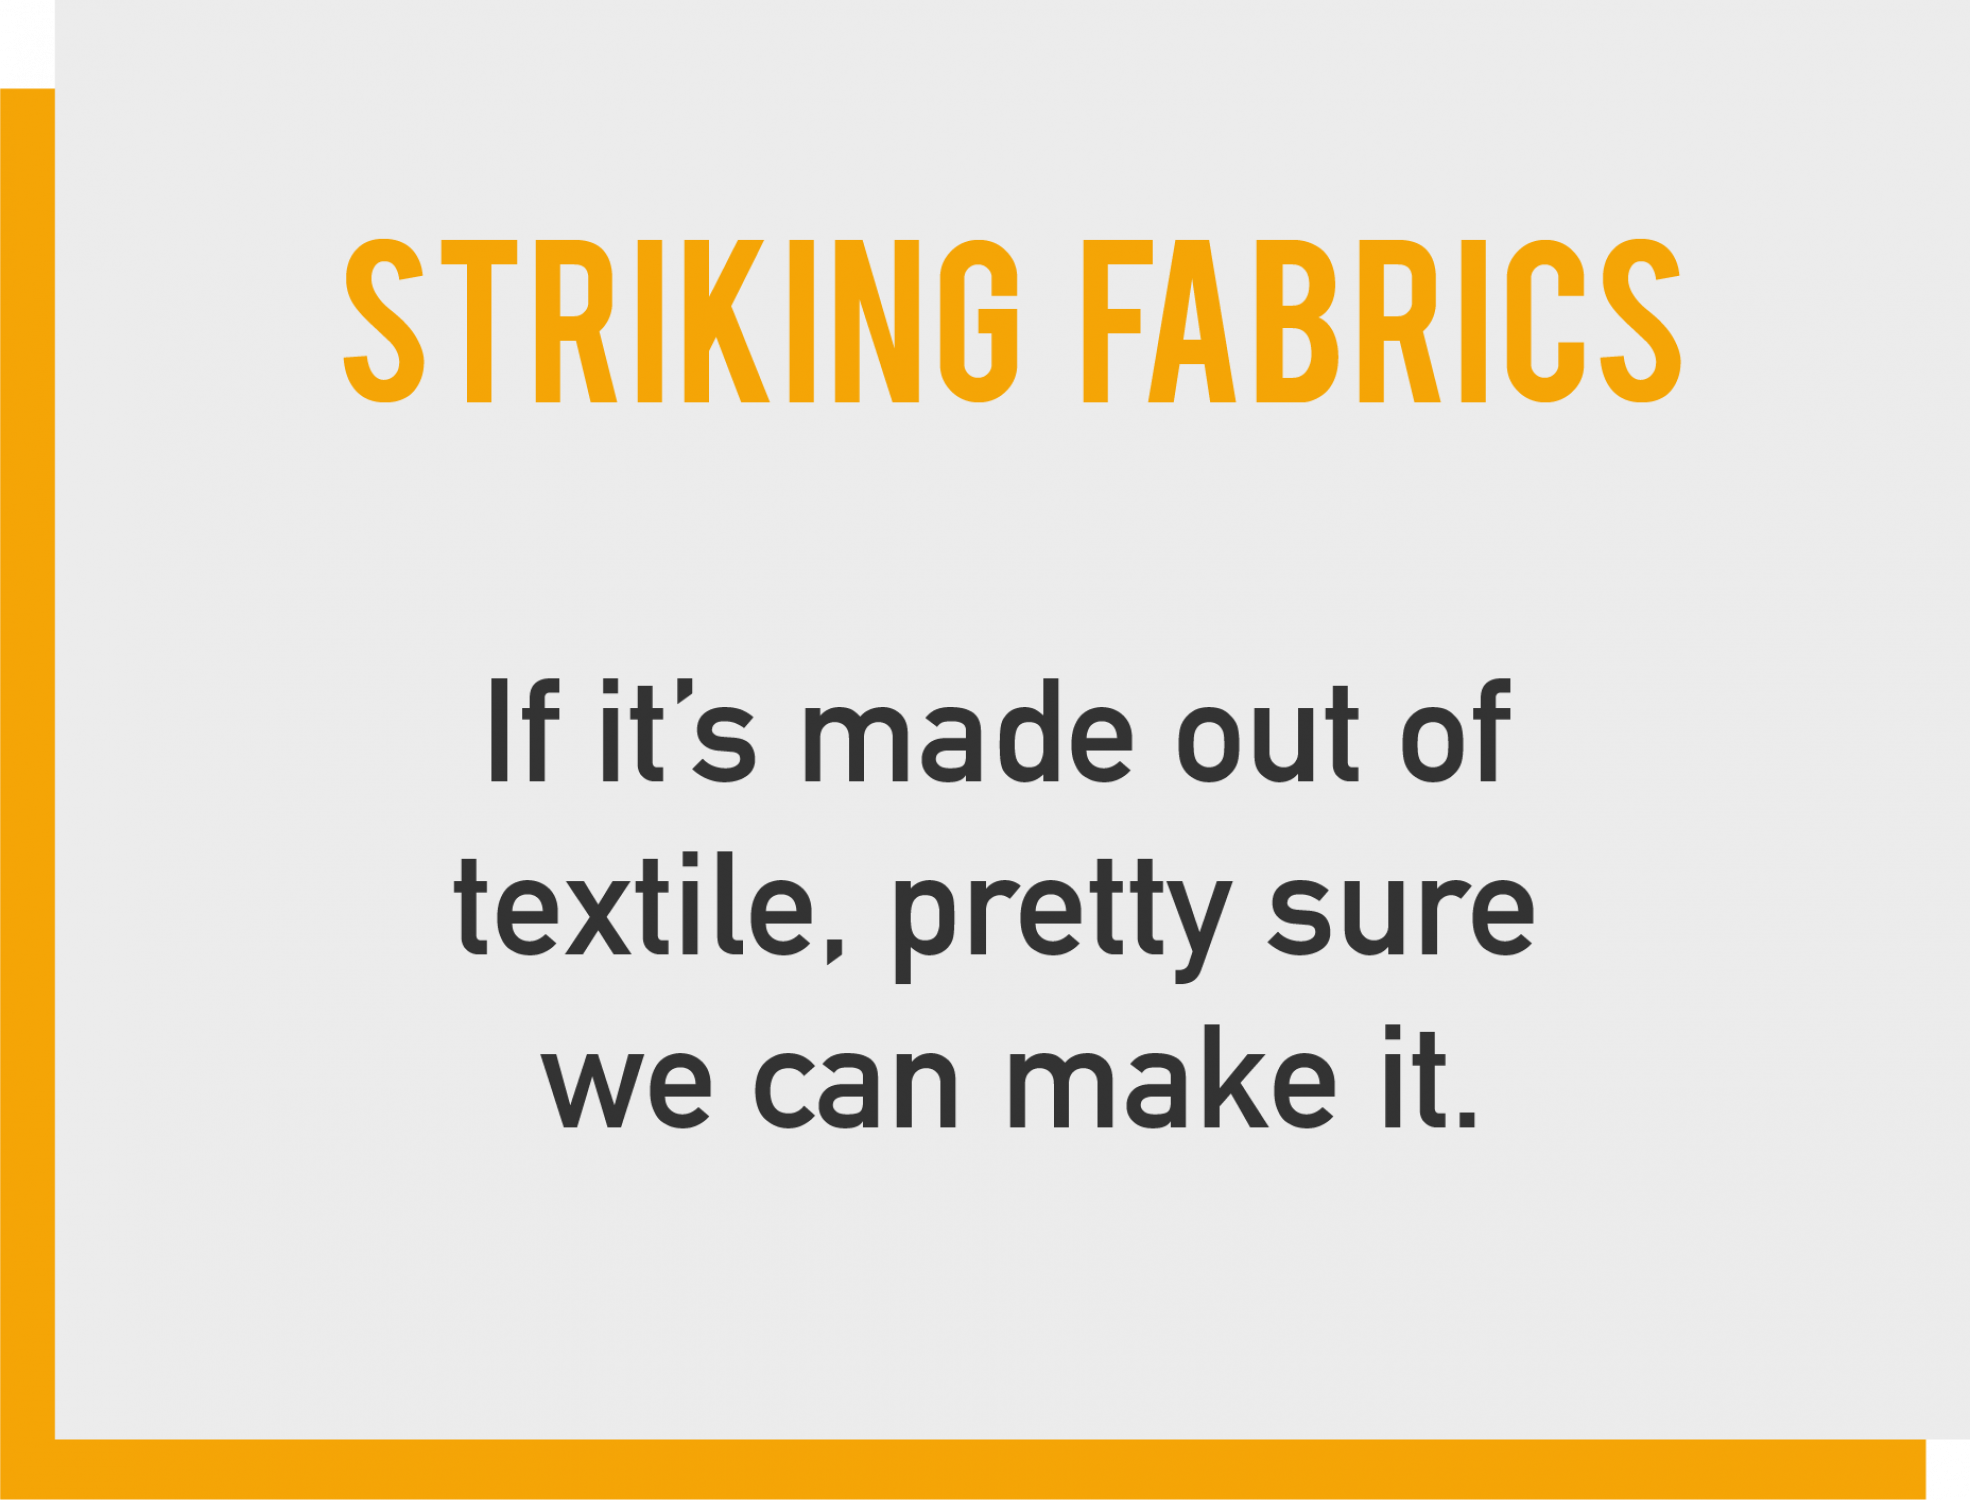 Striking-fabrics@4x.png